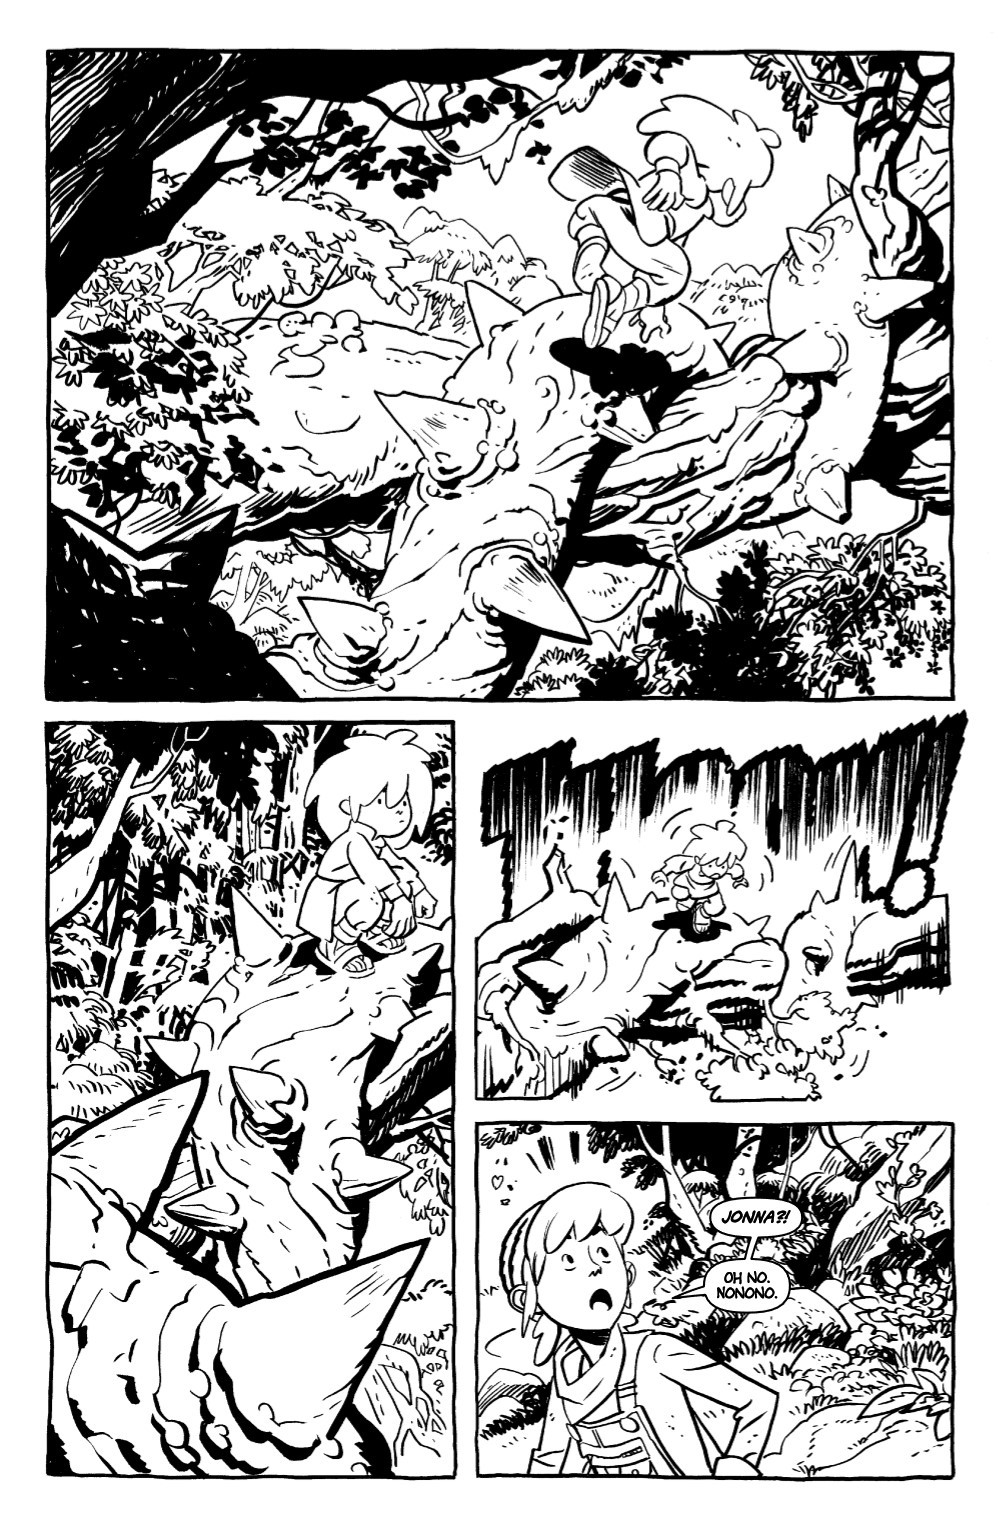 JONNA-1-DB-PGS-01-32-FNL-1-06 ComicList Previews: JONNA AND THE UNPOSSIBLE MONSTERS #1 (DRAWING BOARD EDITION)